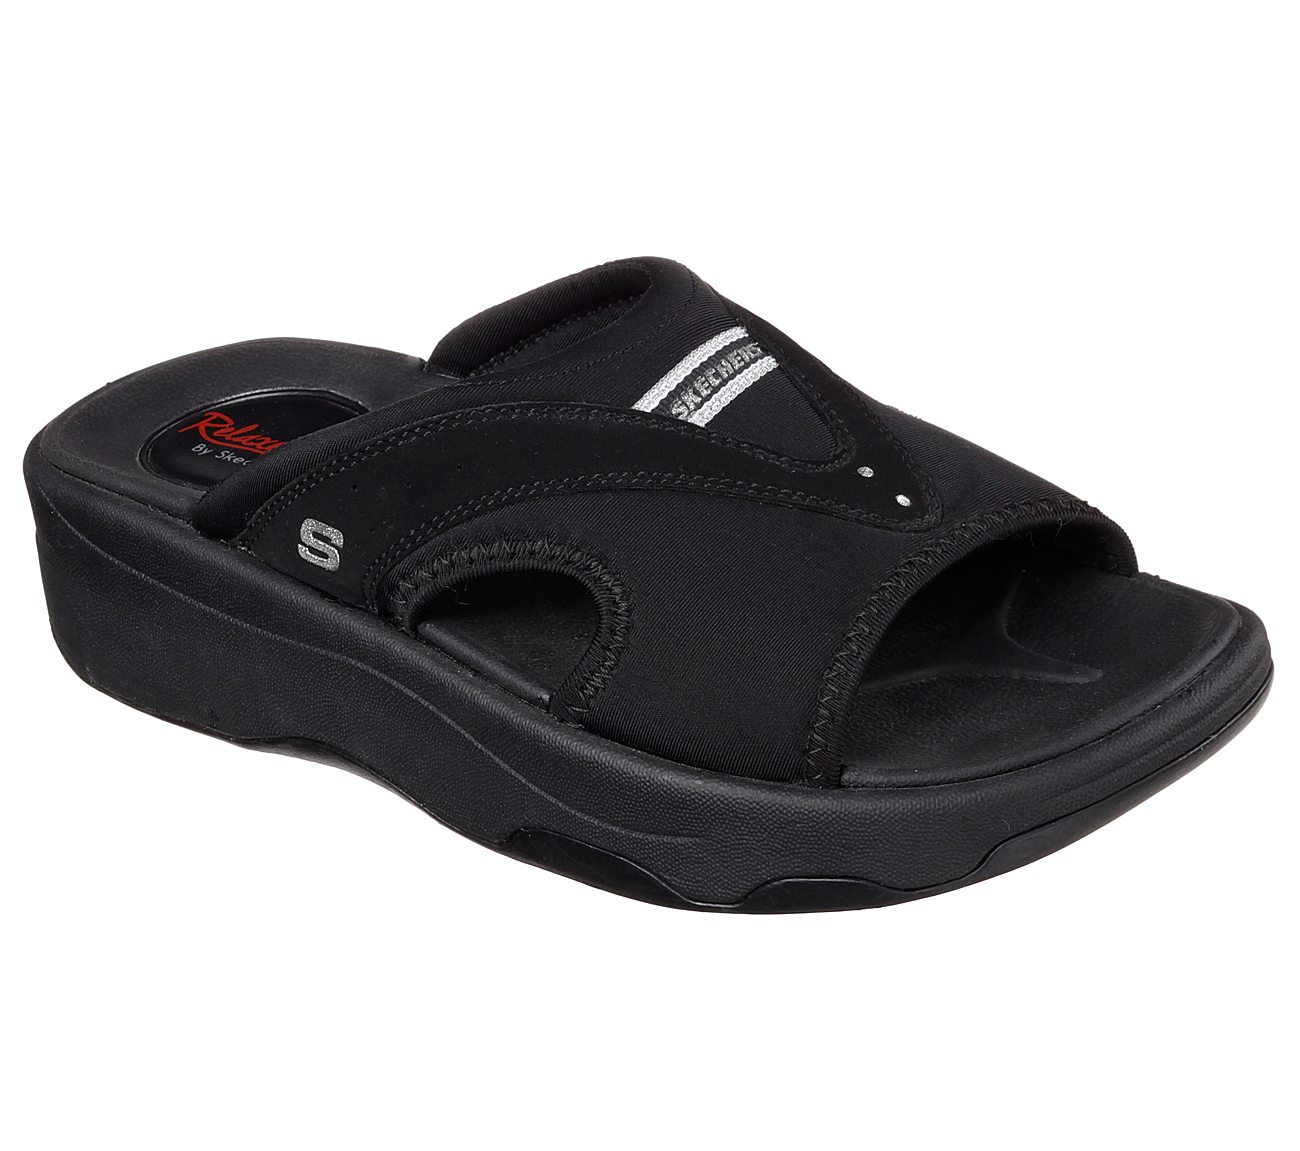 Buy SKECHERS Relaxed Fit: Elevates